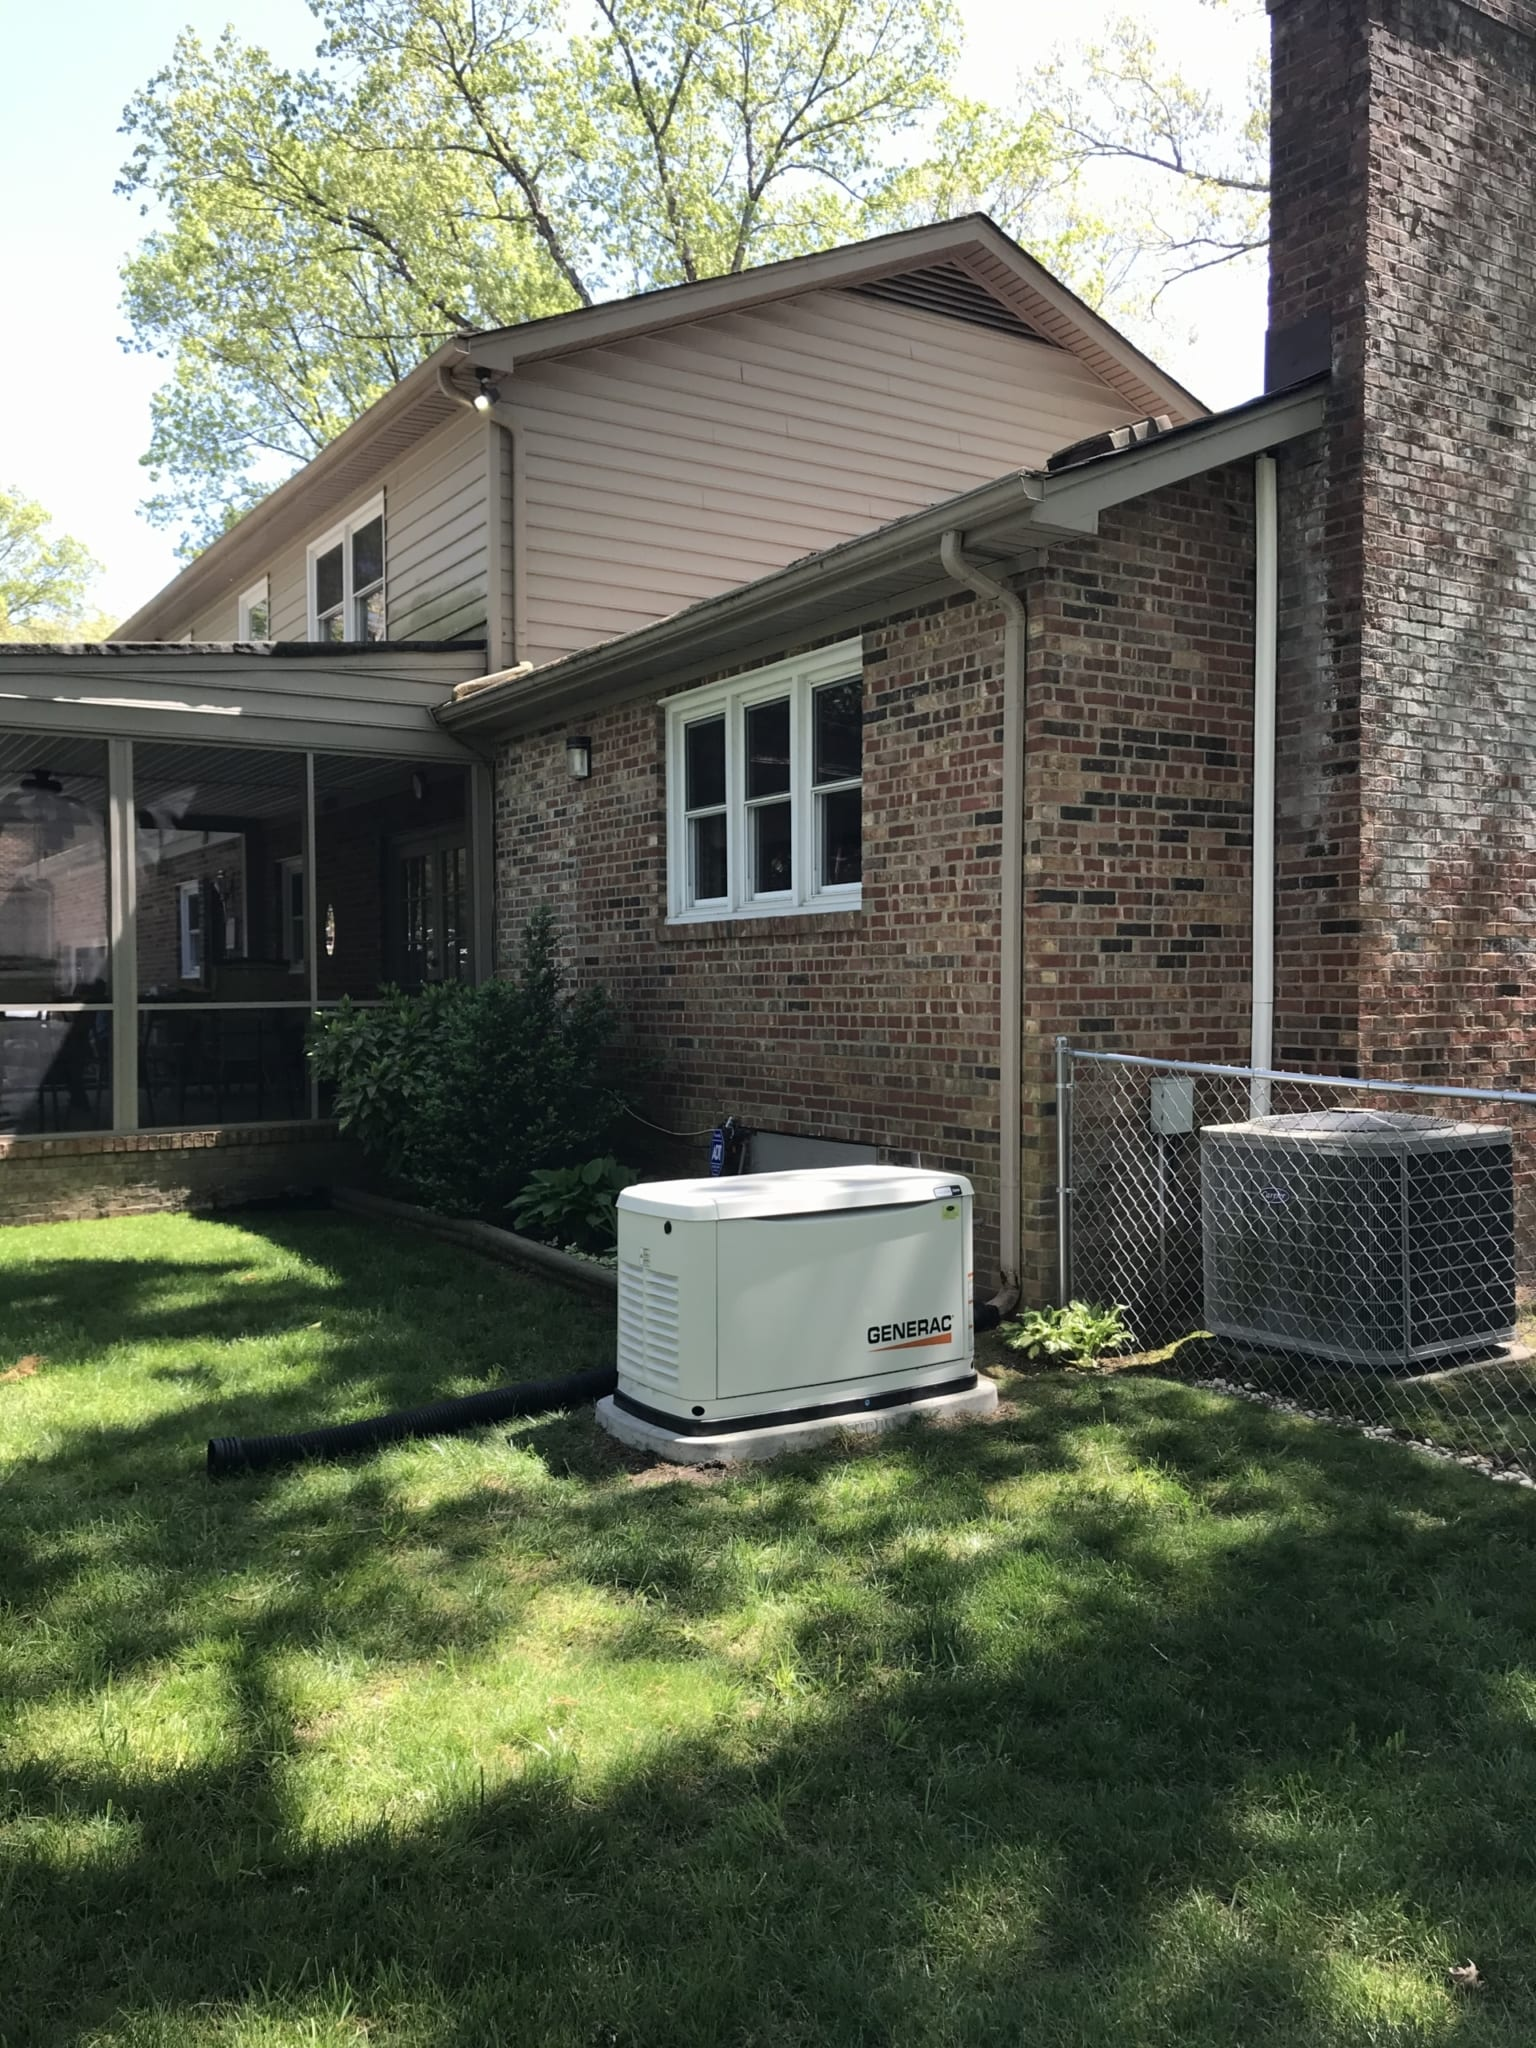 4.14.20 Petersburg Generac Automatic Standby Generator Far